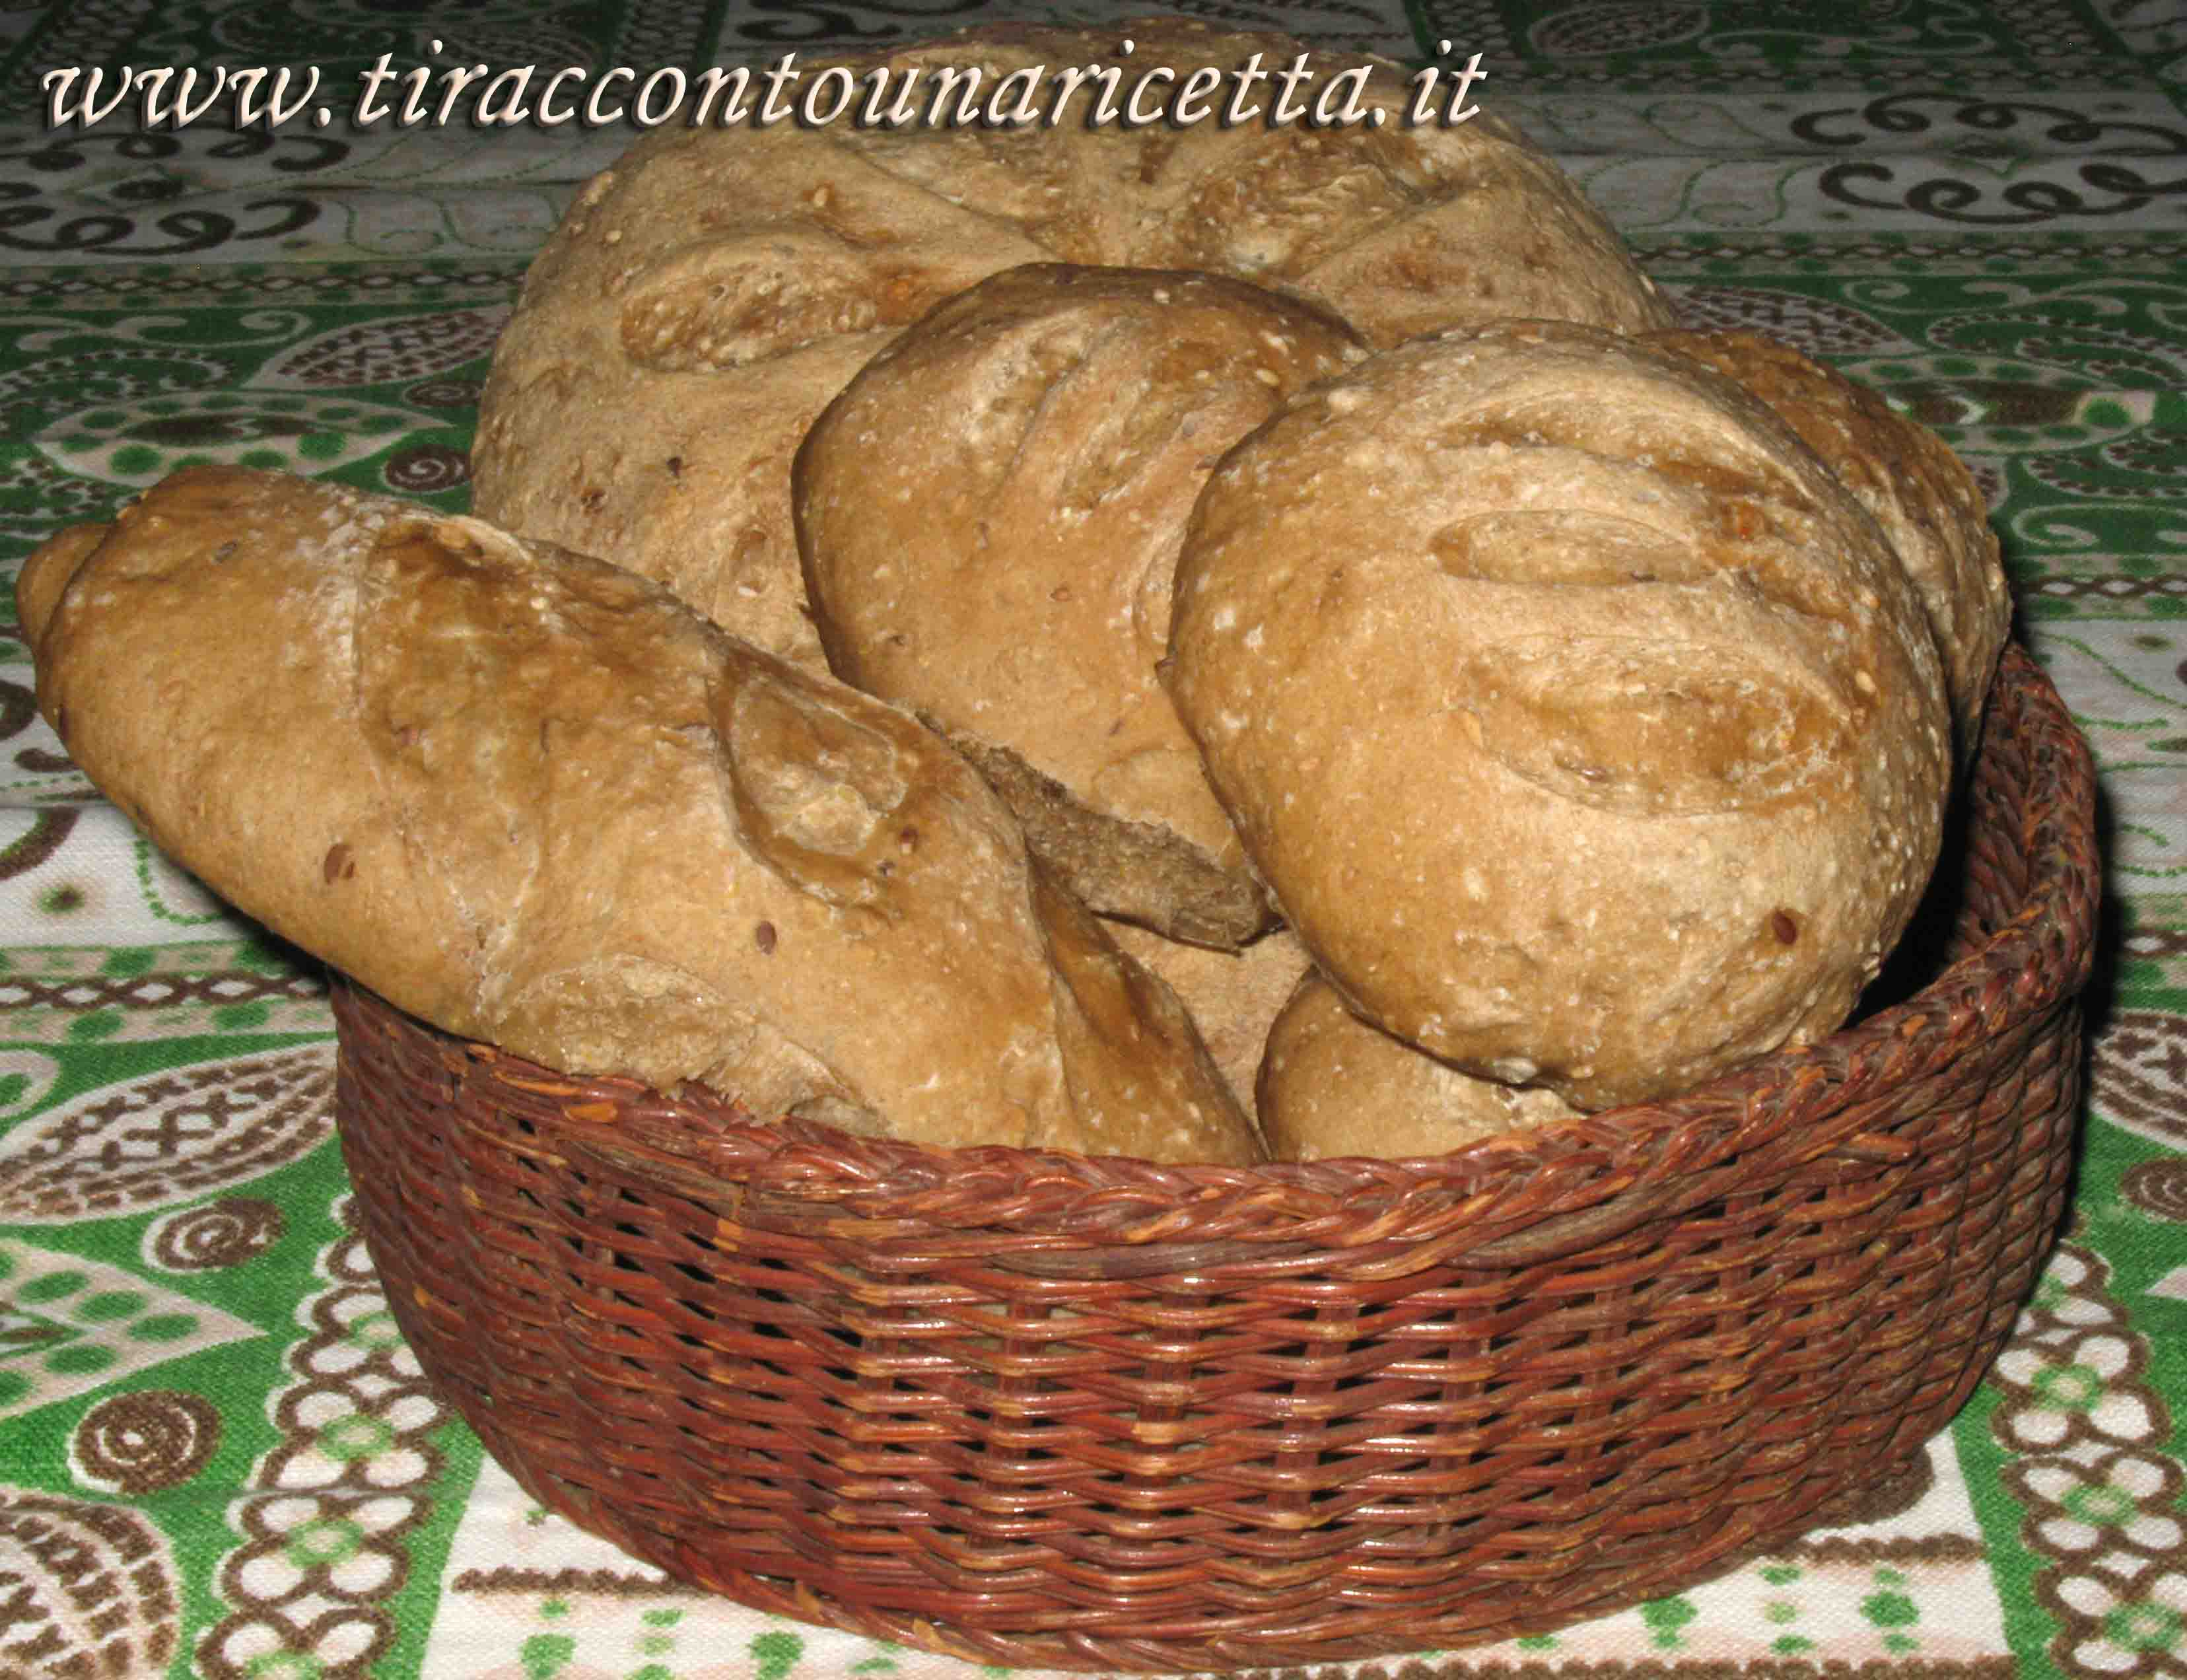 Black bread of Valle d Aosta or Pan Ner